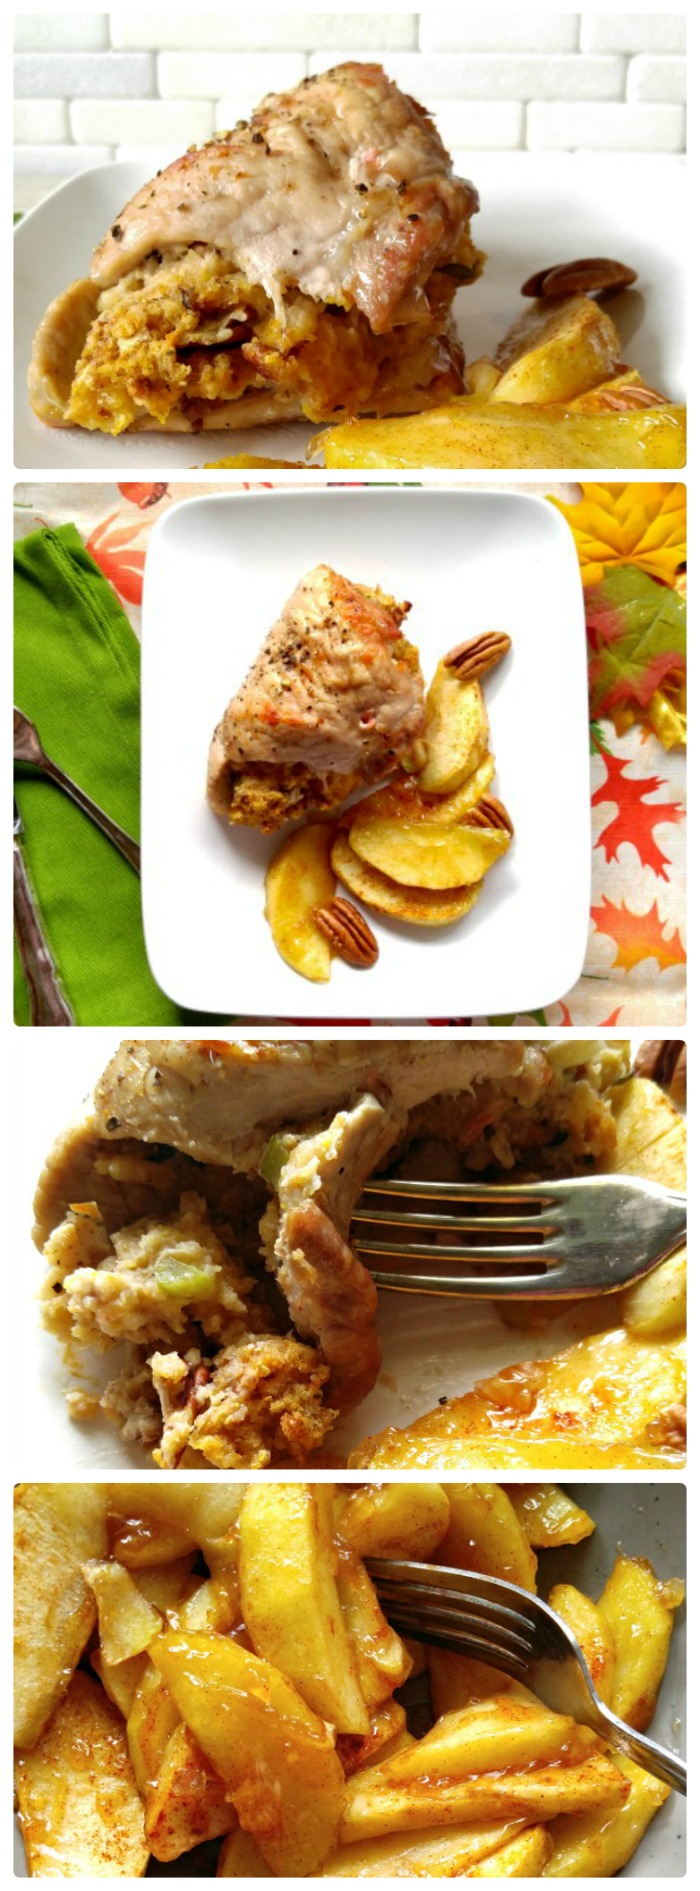 These Apple pecan stuffed pork chops welcome in fall in a super tasty way. Best of all, they are easy to make in about 30 minutes.